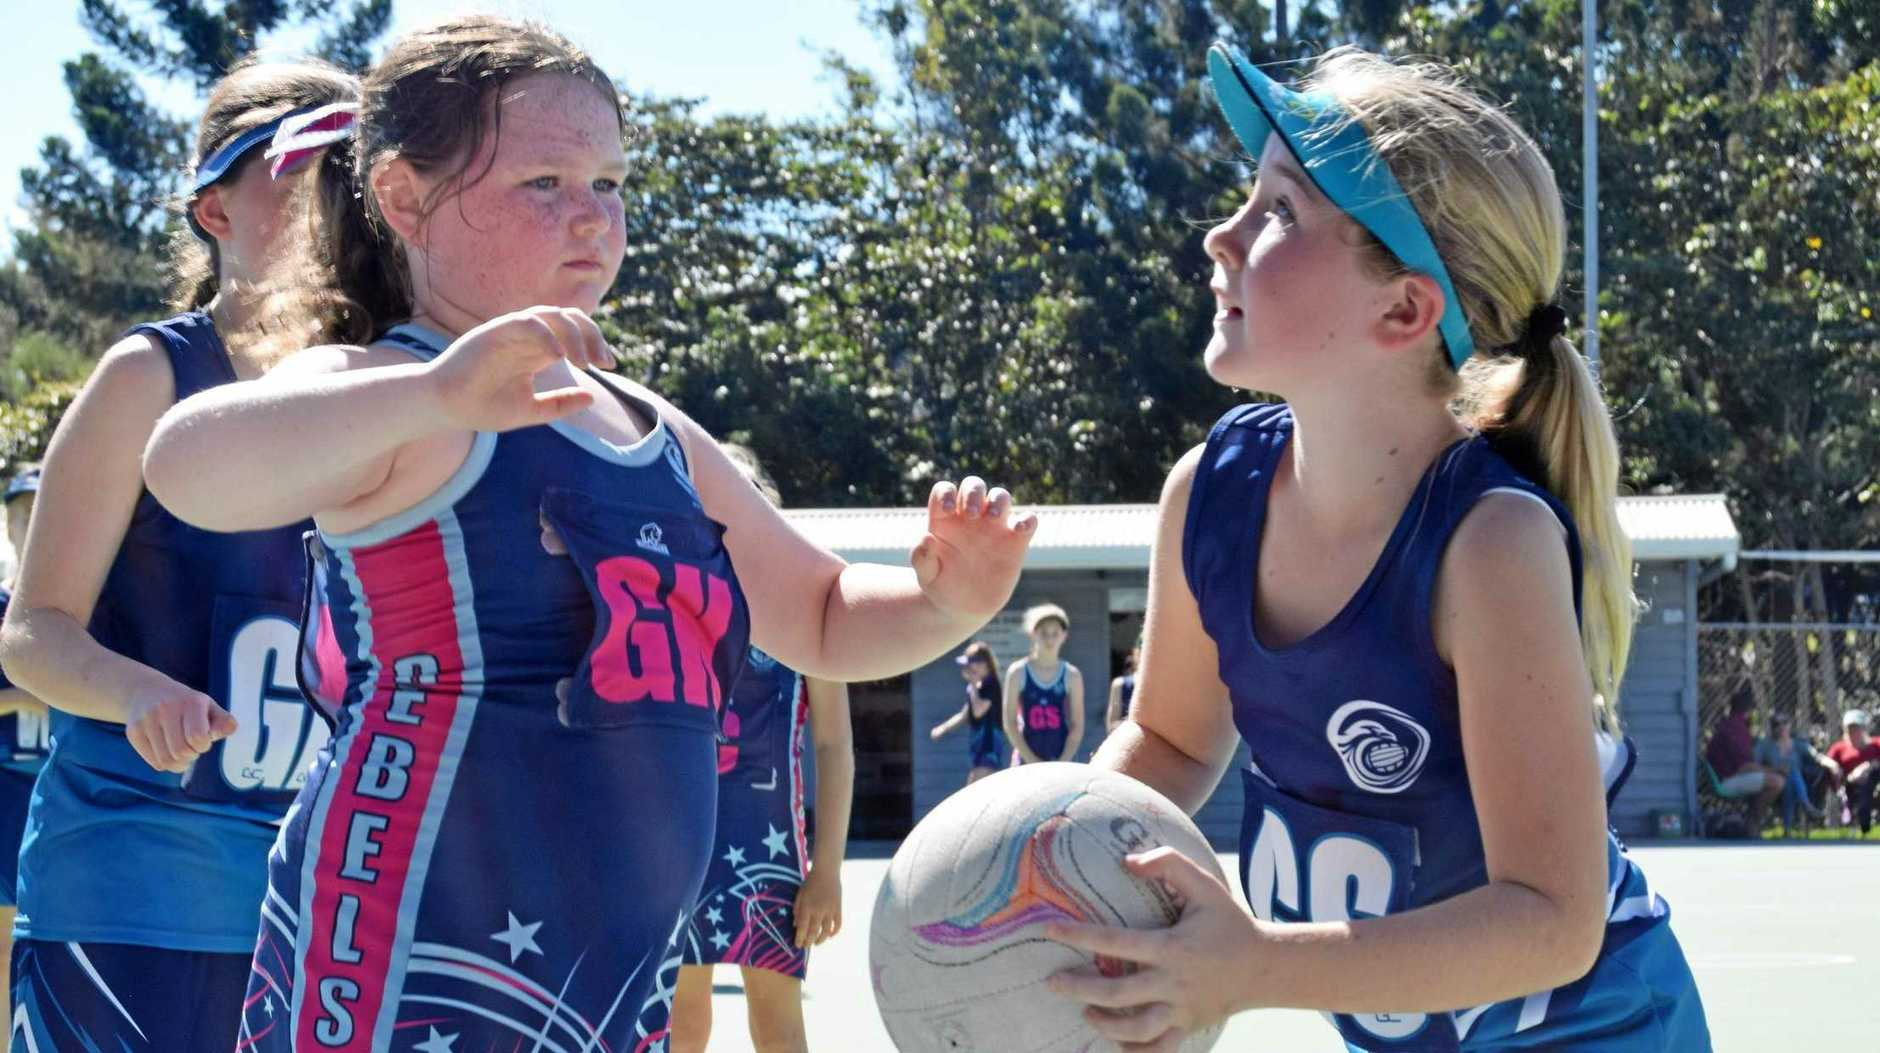 ON A ROLE: Grace Kelleher in attacking position about to score a point in the netball under 12s carnival held in Gympie today.